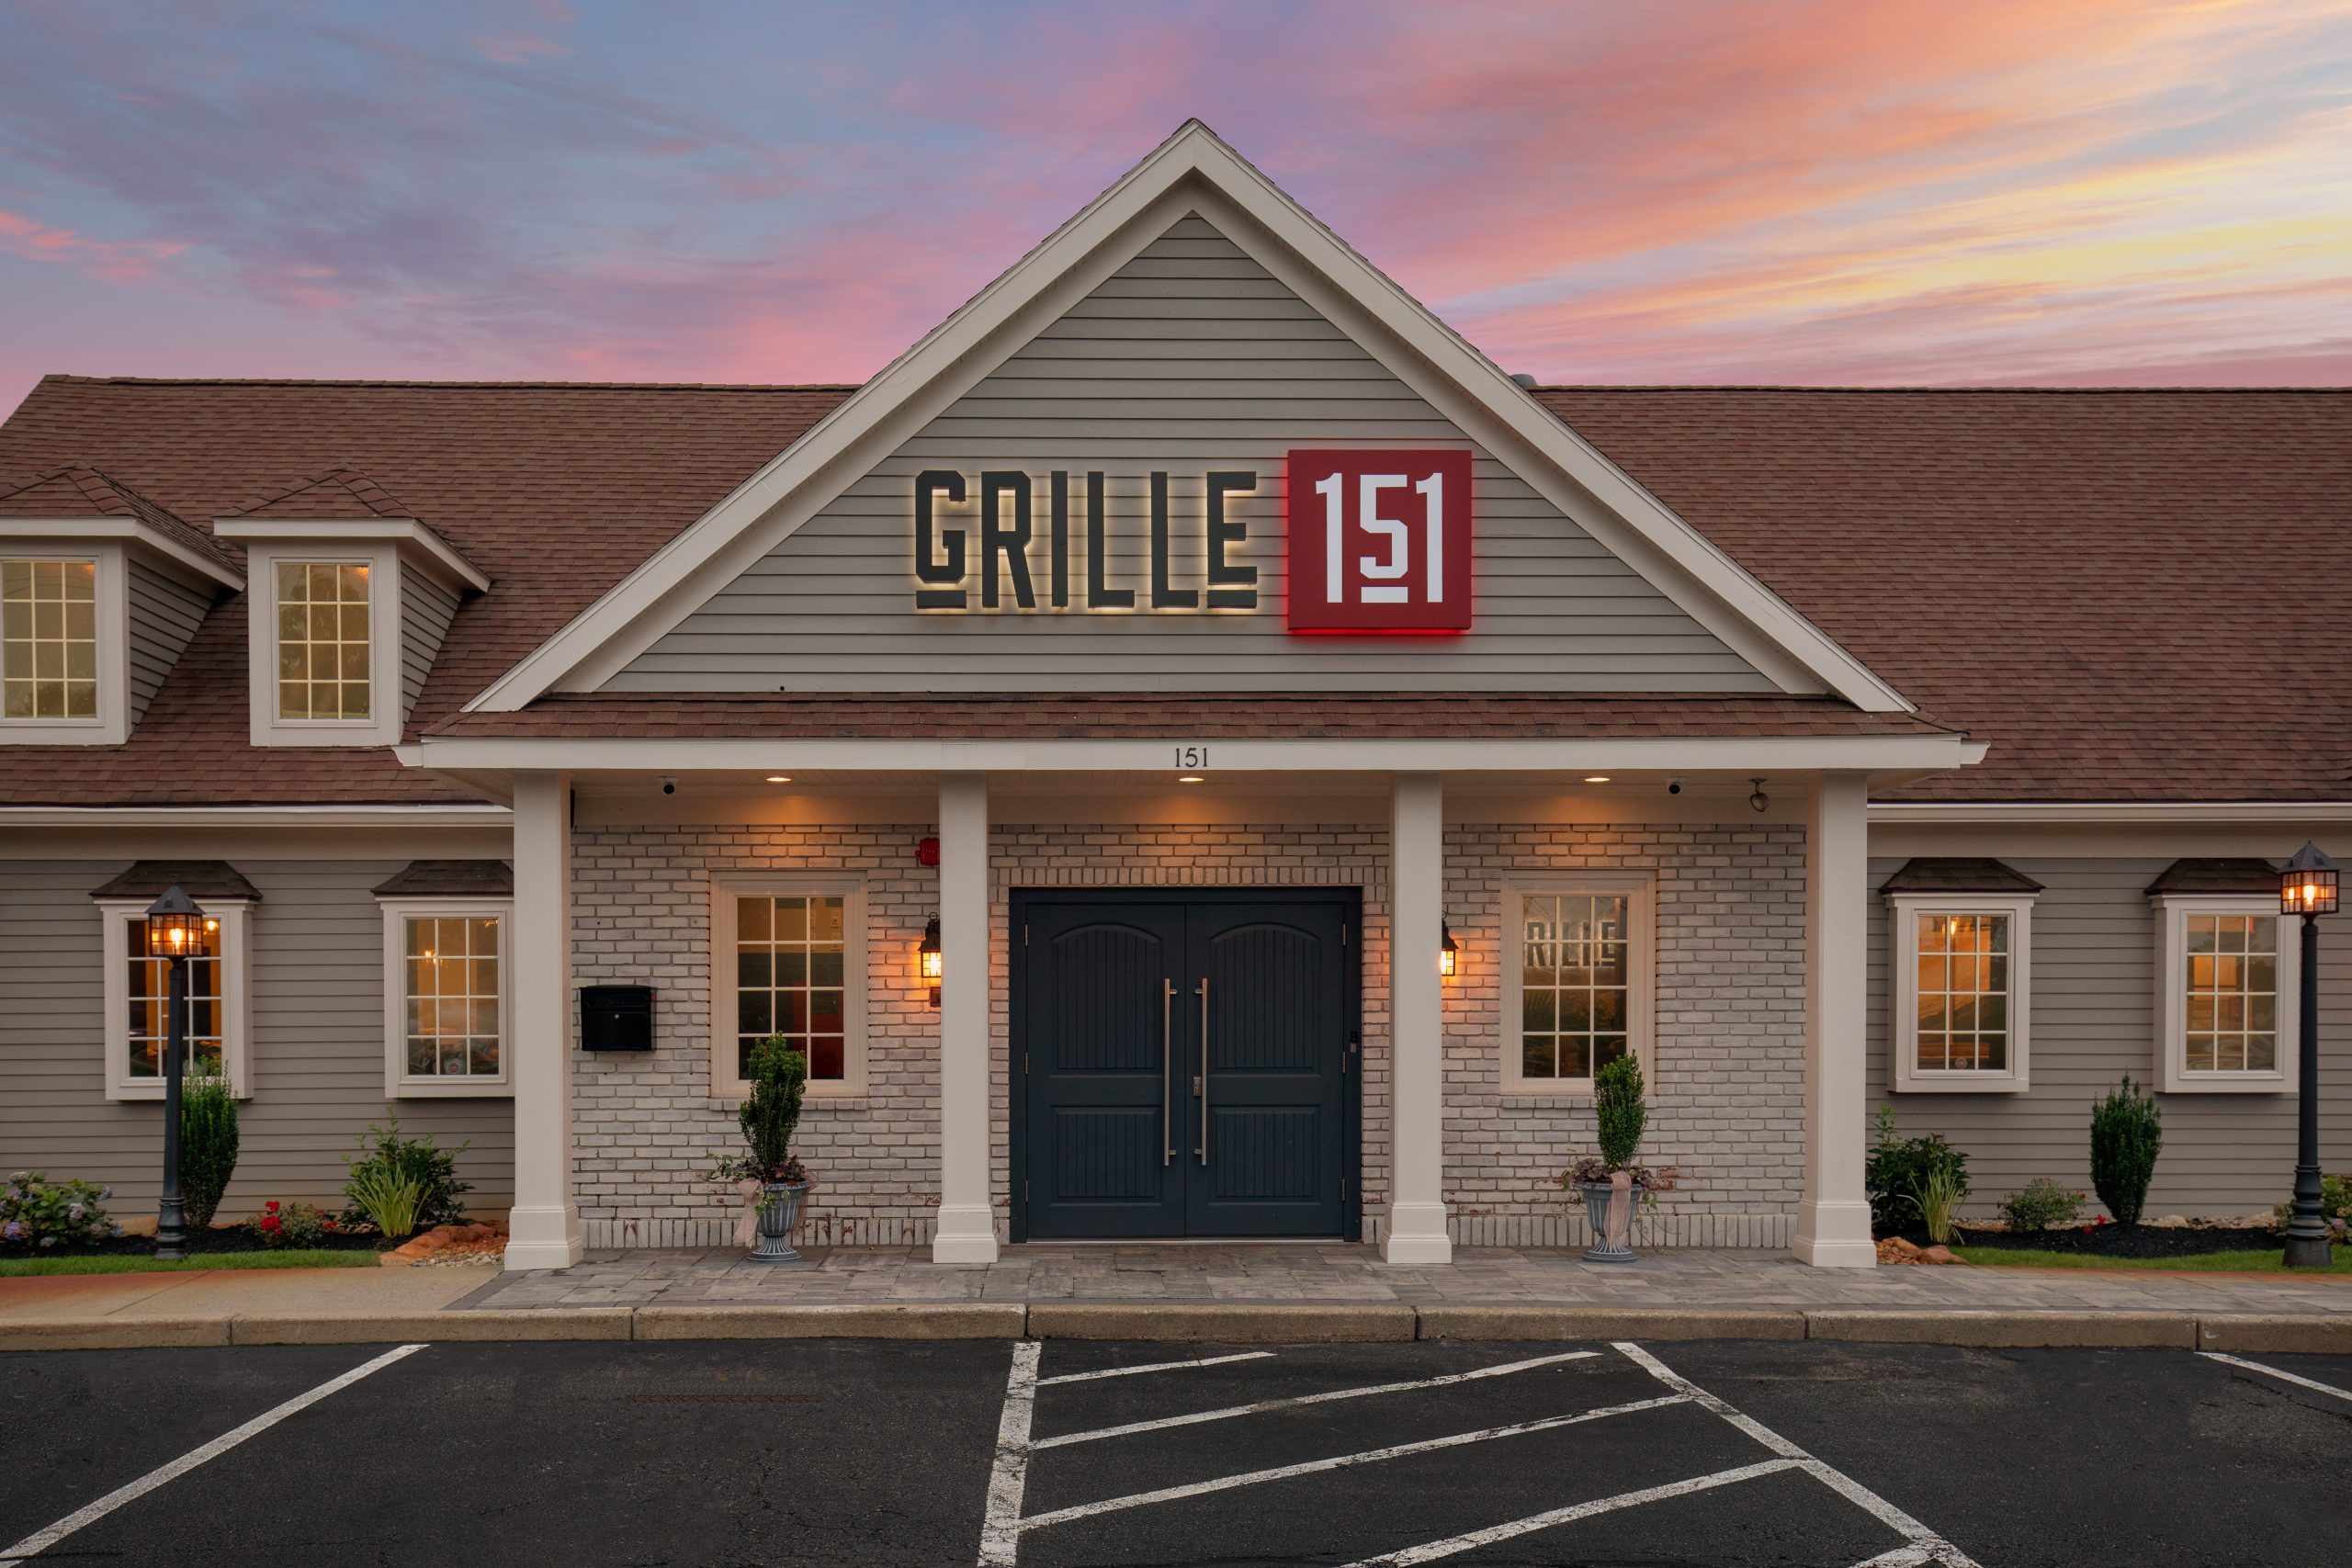 Grille 151 outside at twilight